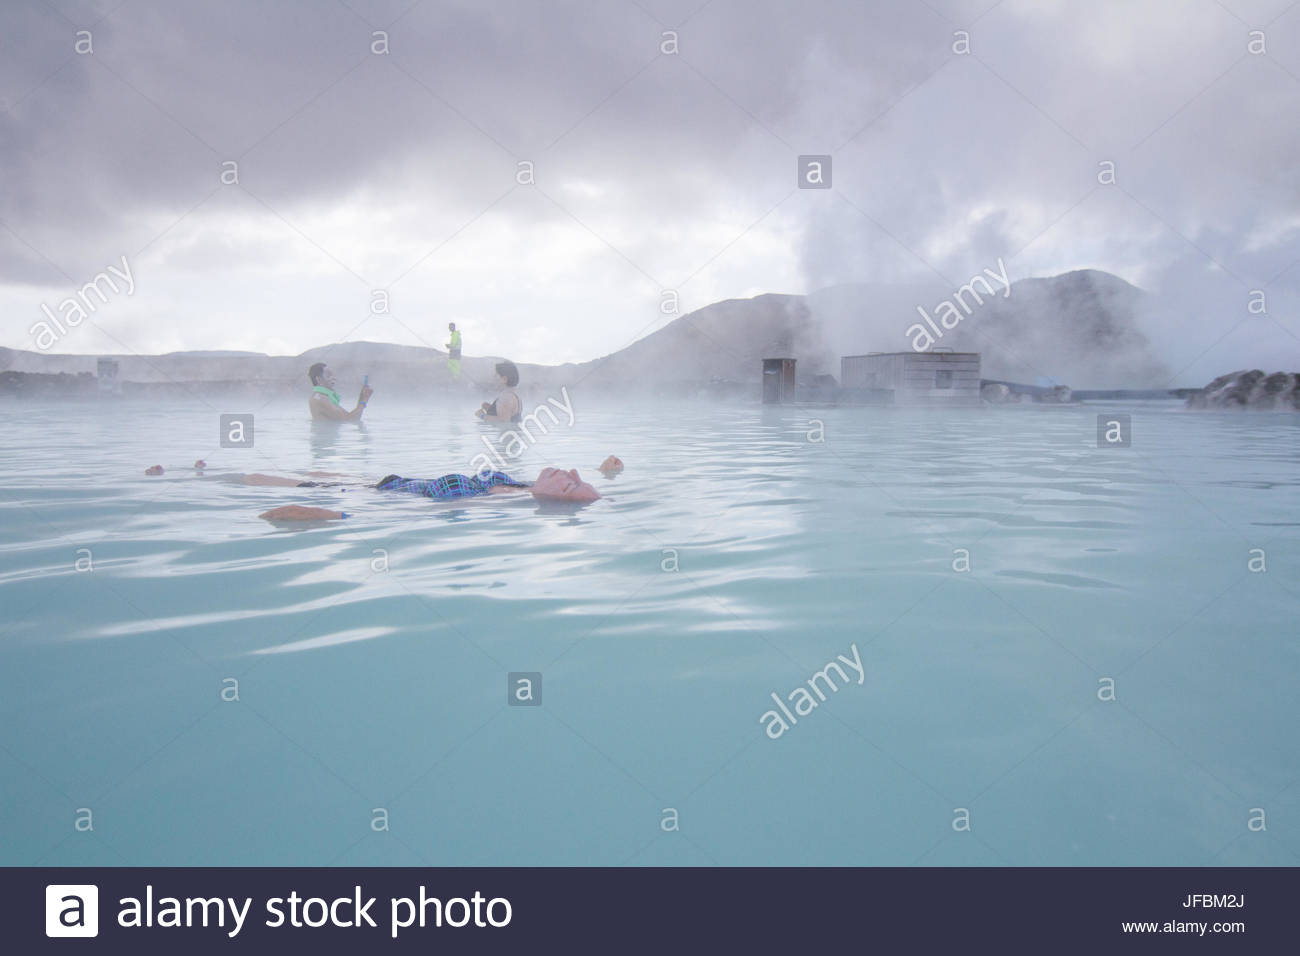 People relaxing in the geothermal hot springs at Blue Lagoon. Stock Photo